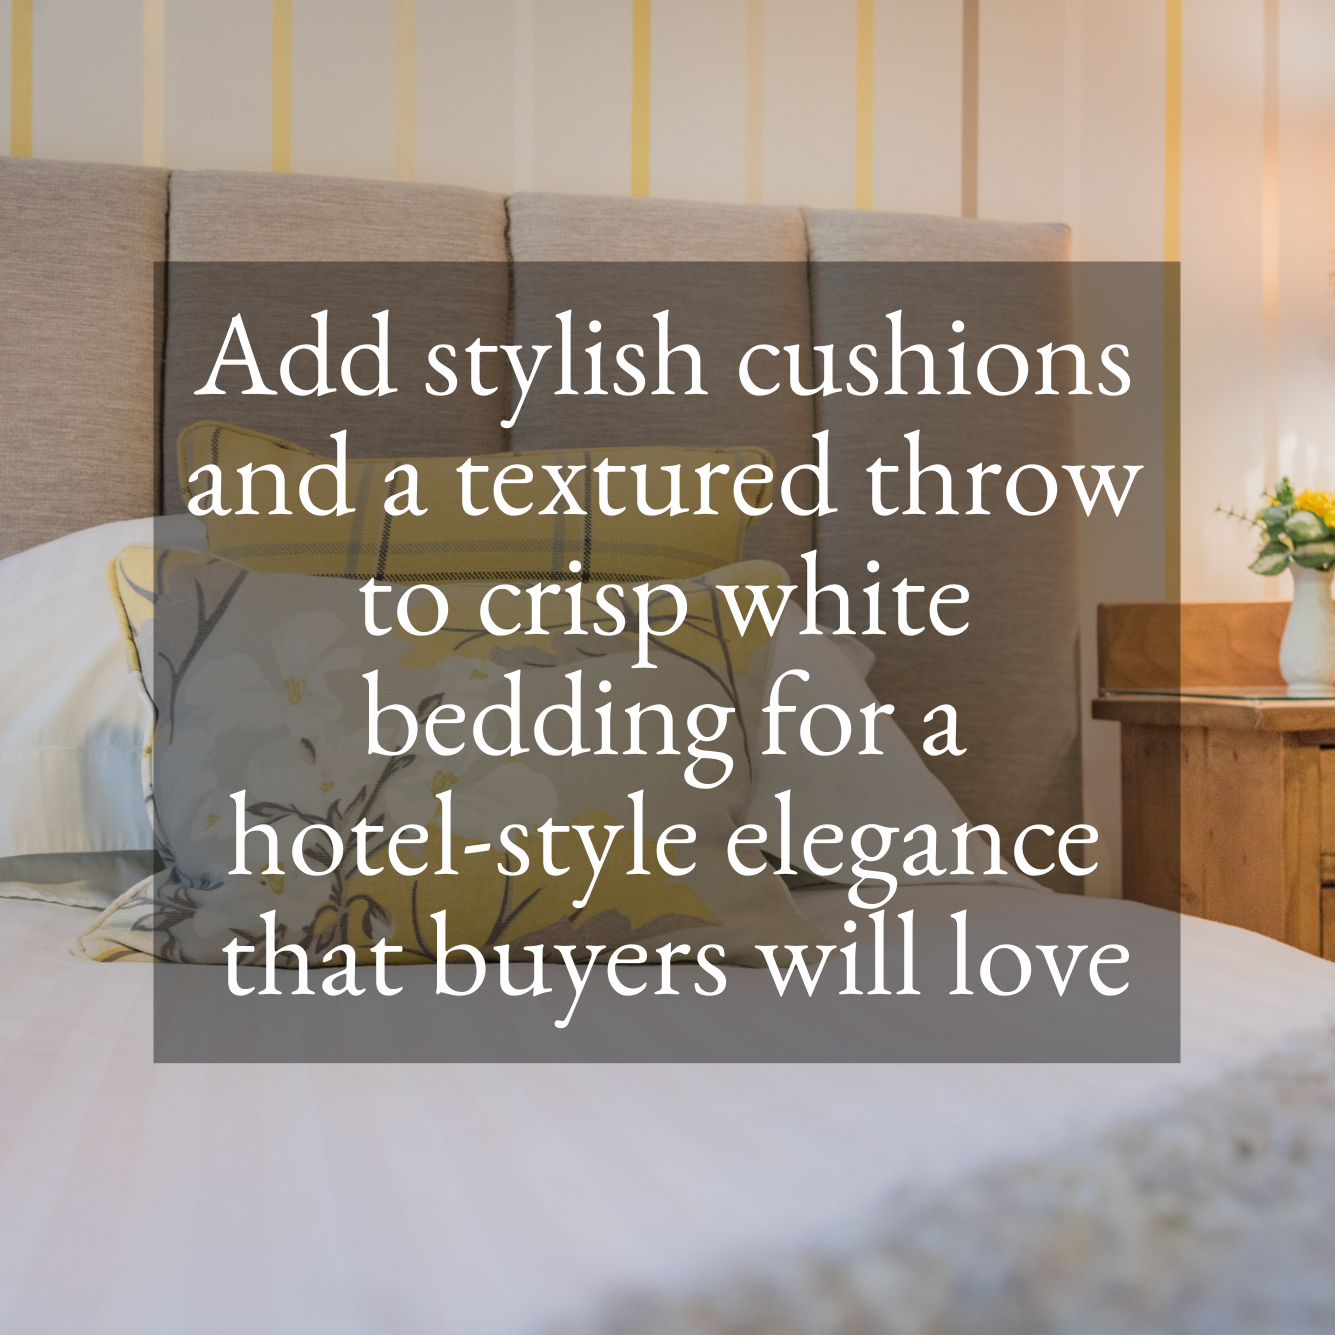 tg1-add-stylish-cushions-and-textured-throw